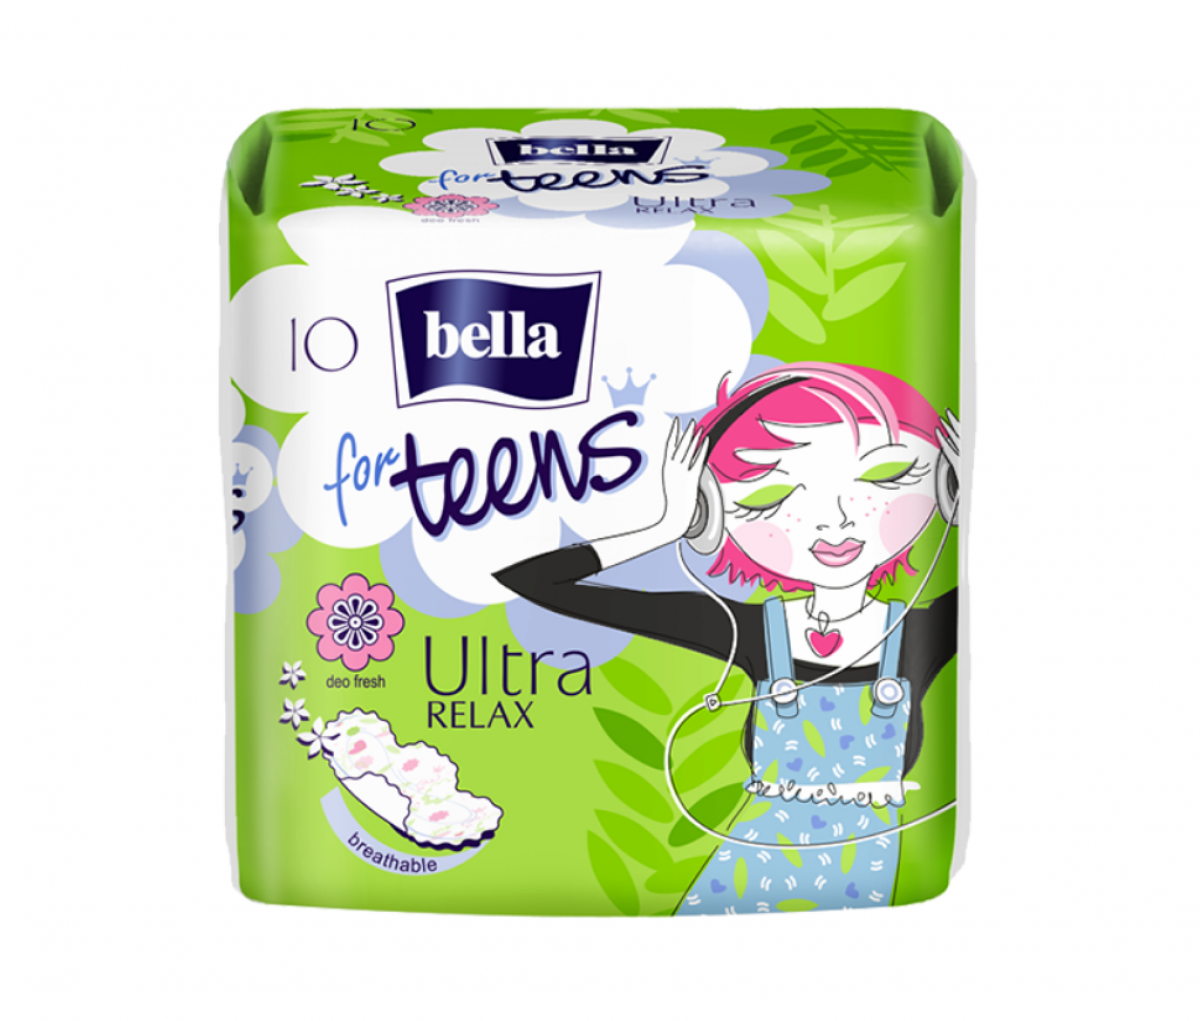 TZMO Bella for Teens Ultra Relax Sanitary Pads A10